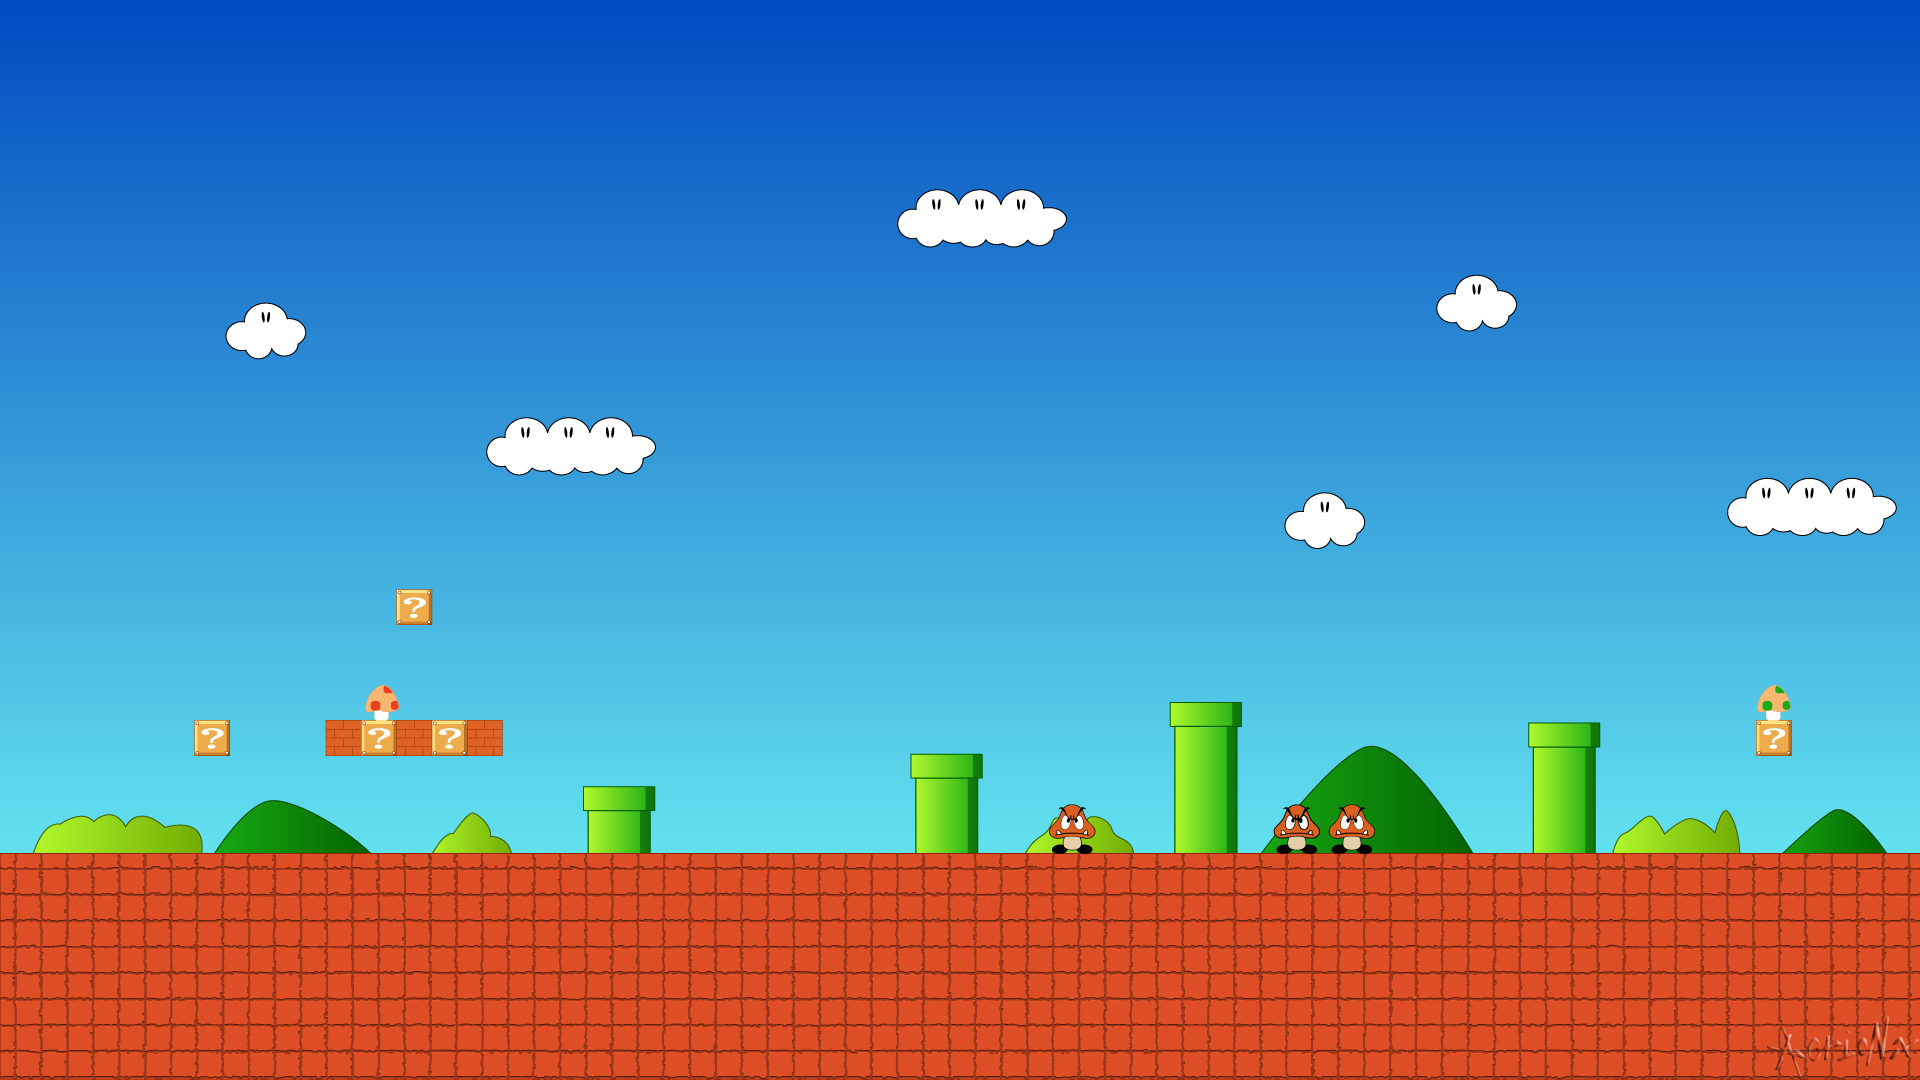 Super Mario Bros HD Wallpaper Background Image 1920x1080 ID 1920x1080